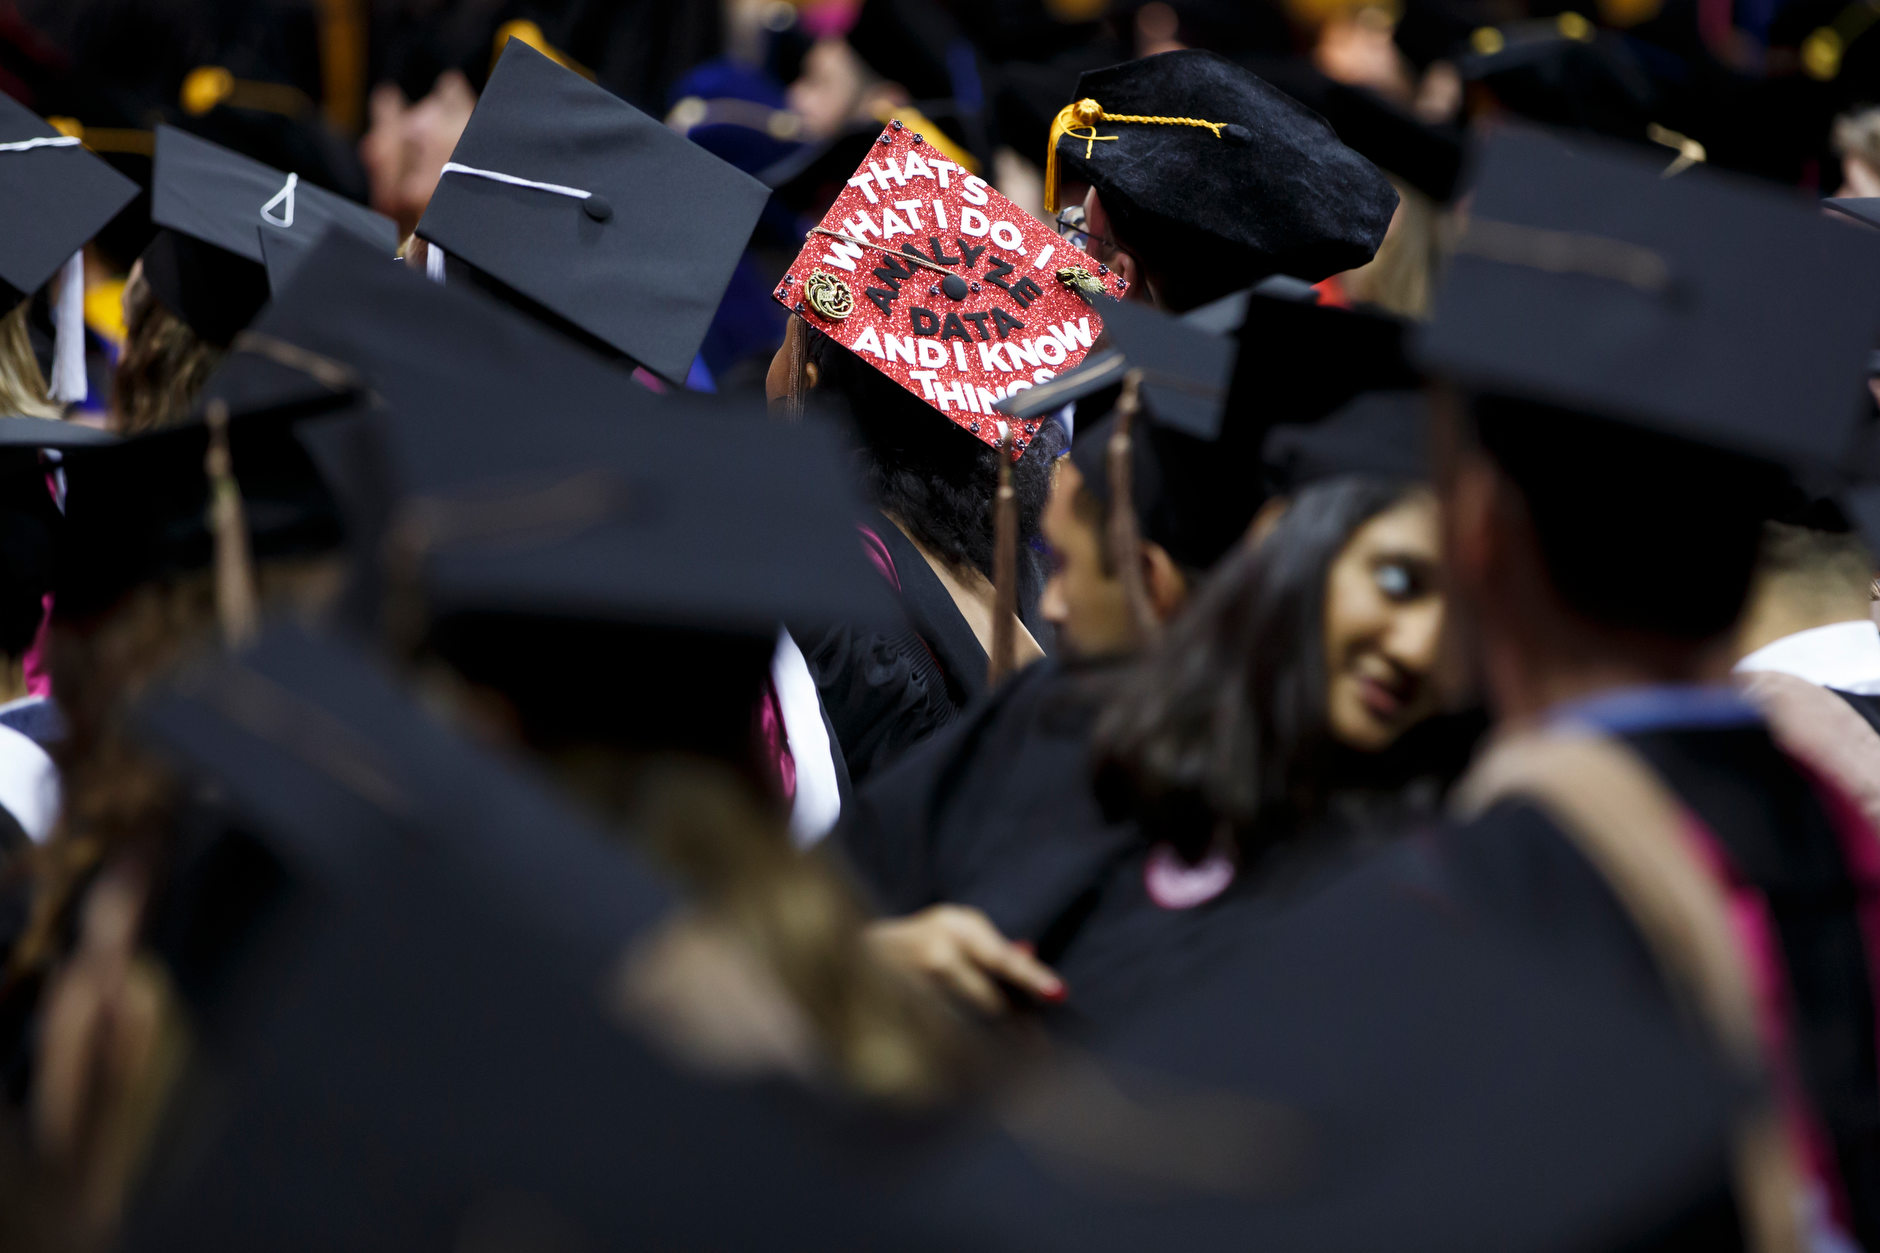 A graduate wears a decorated mortarboard during the Indiana University Bloomington Graduate Commencement at Assembly Hall on Friday, May 3, 2019. (James Brosher/Indiana University)